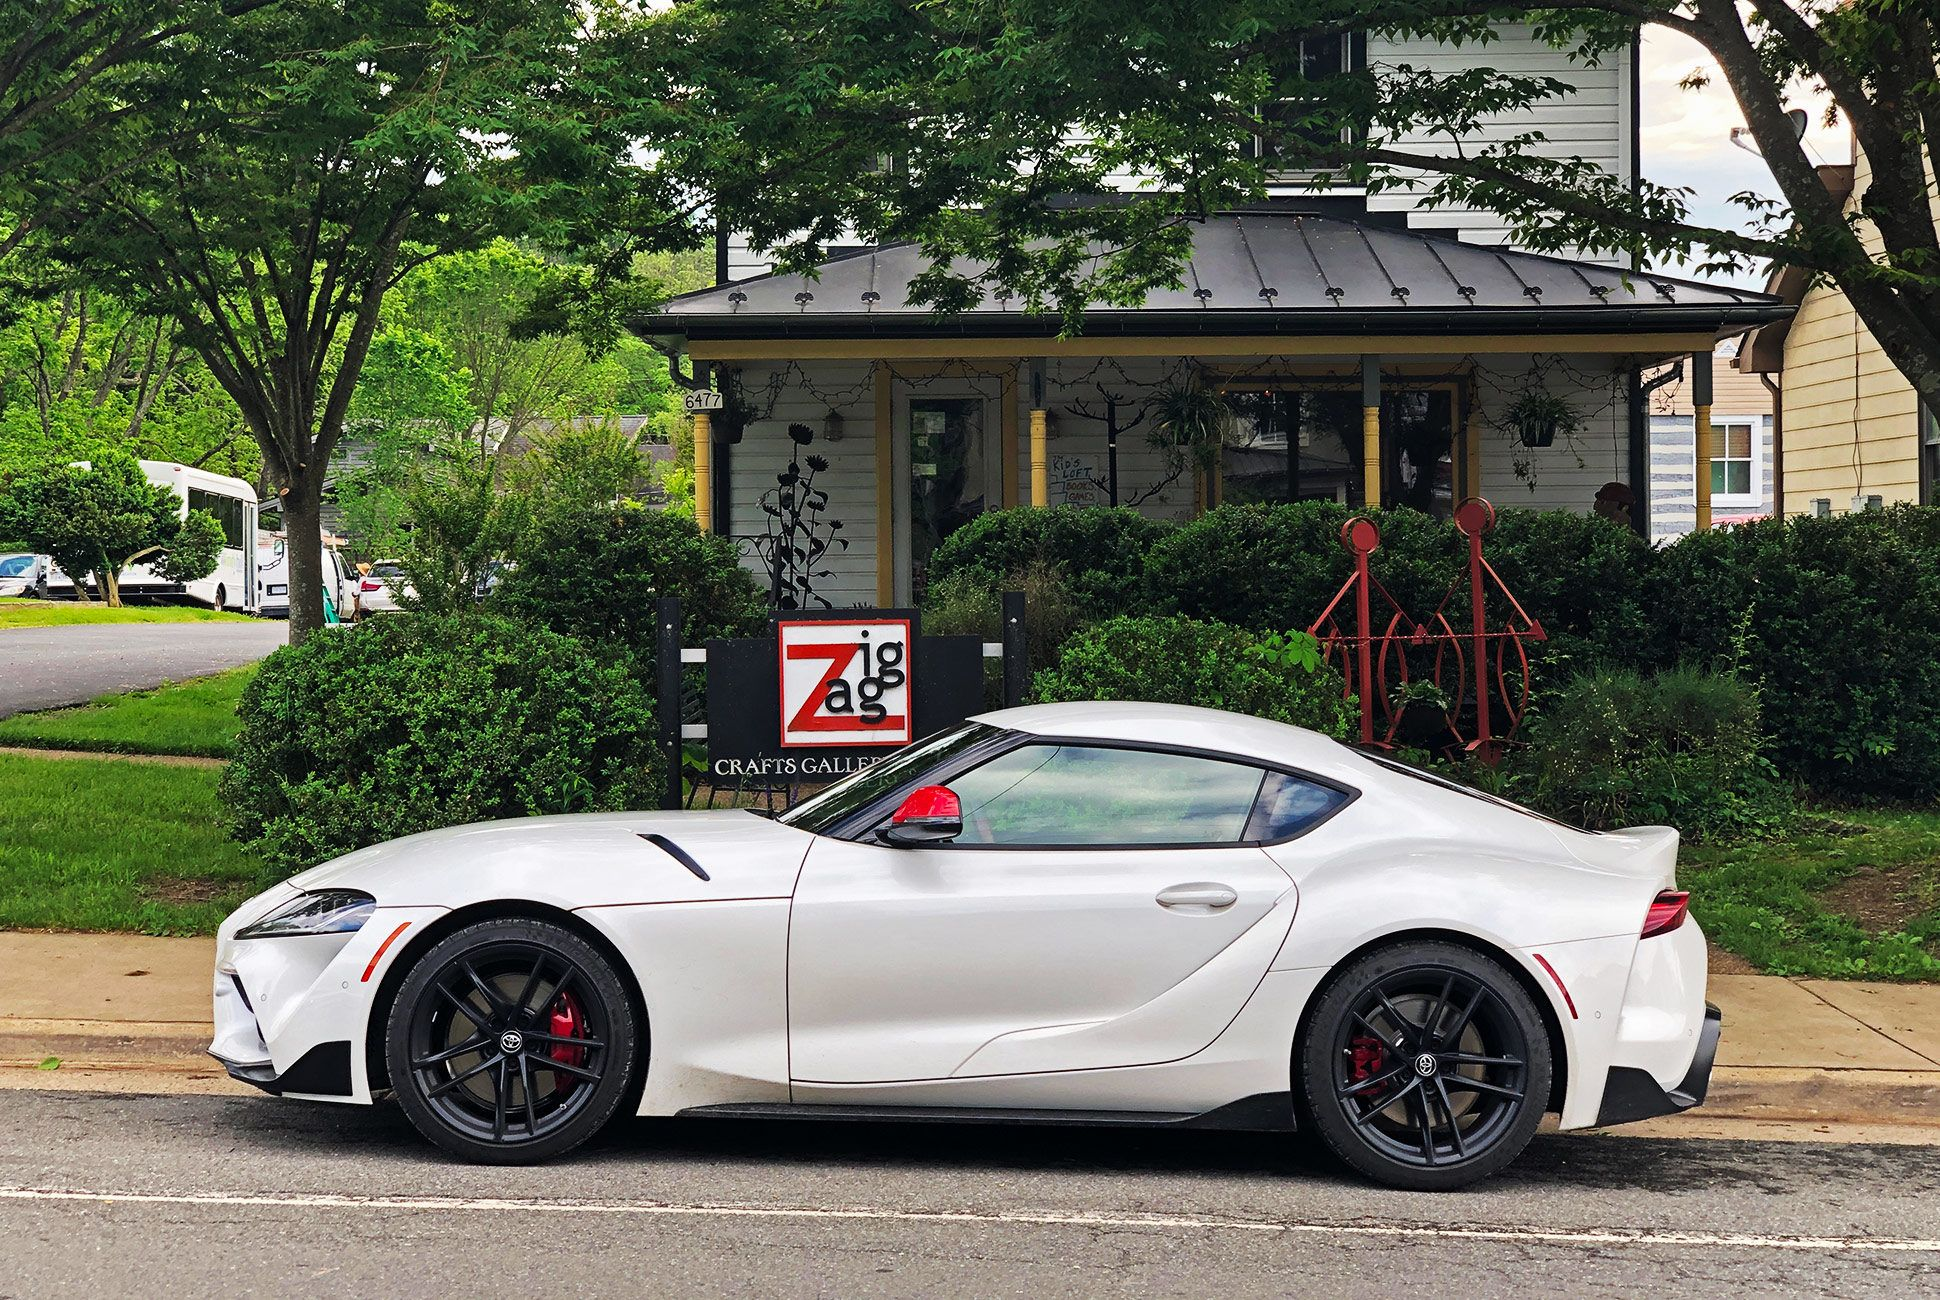 2020-Toyota-Supra-Gr-Review-gear-patrol-slide-3